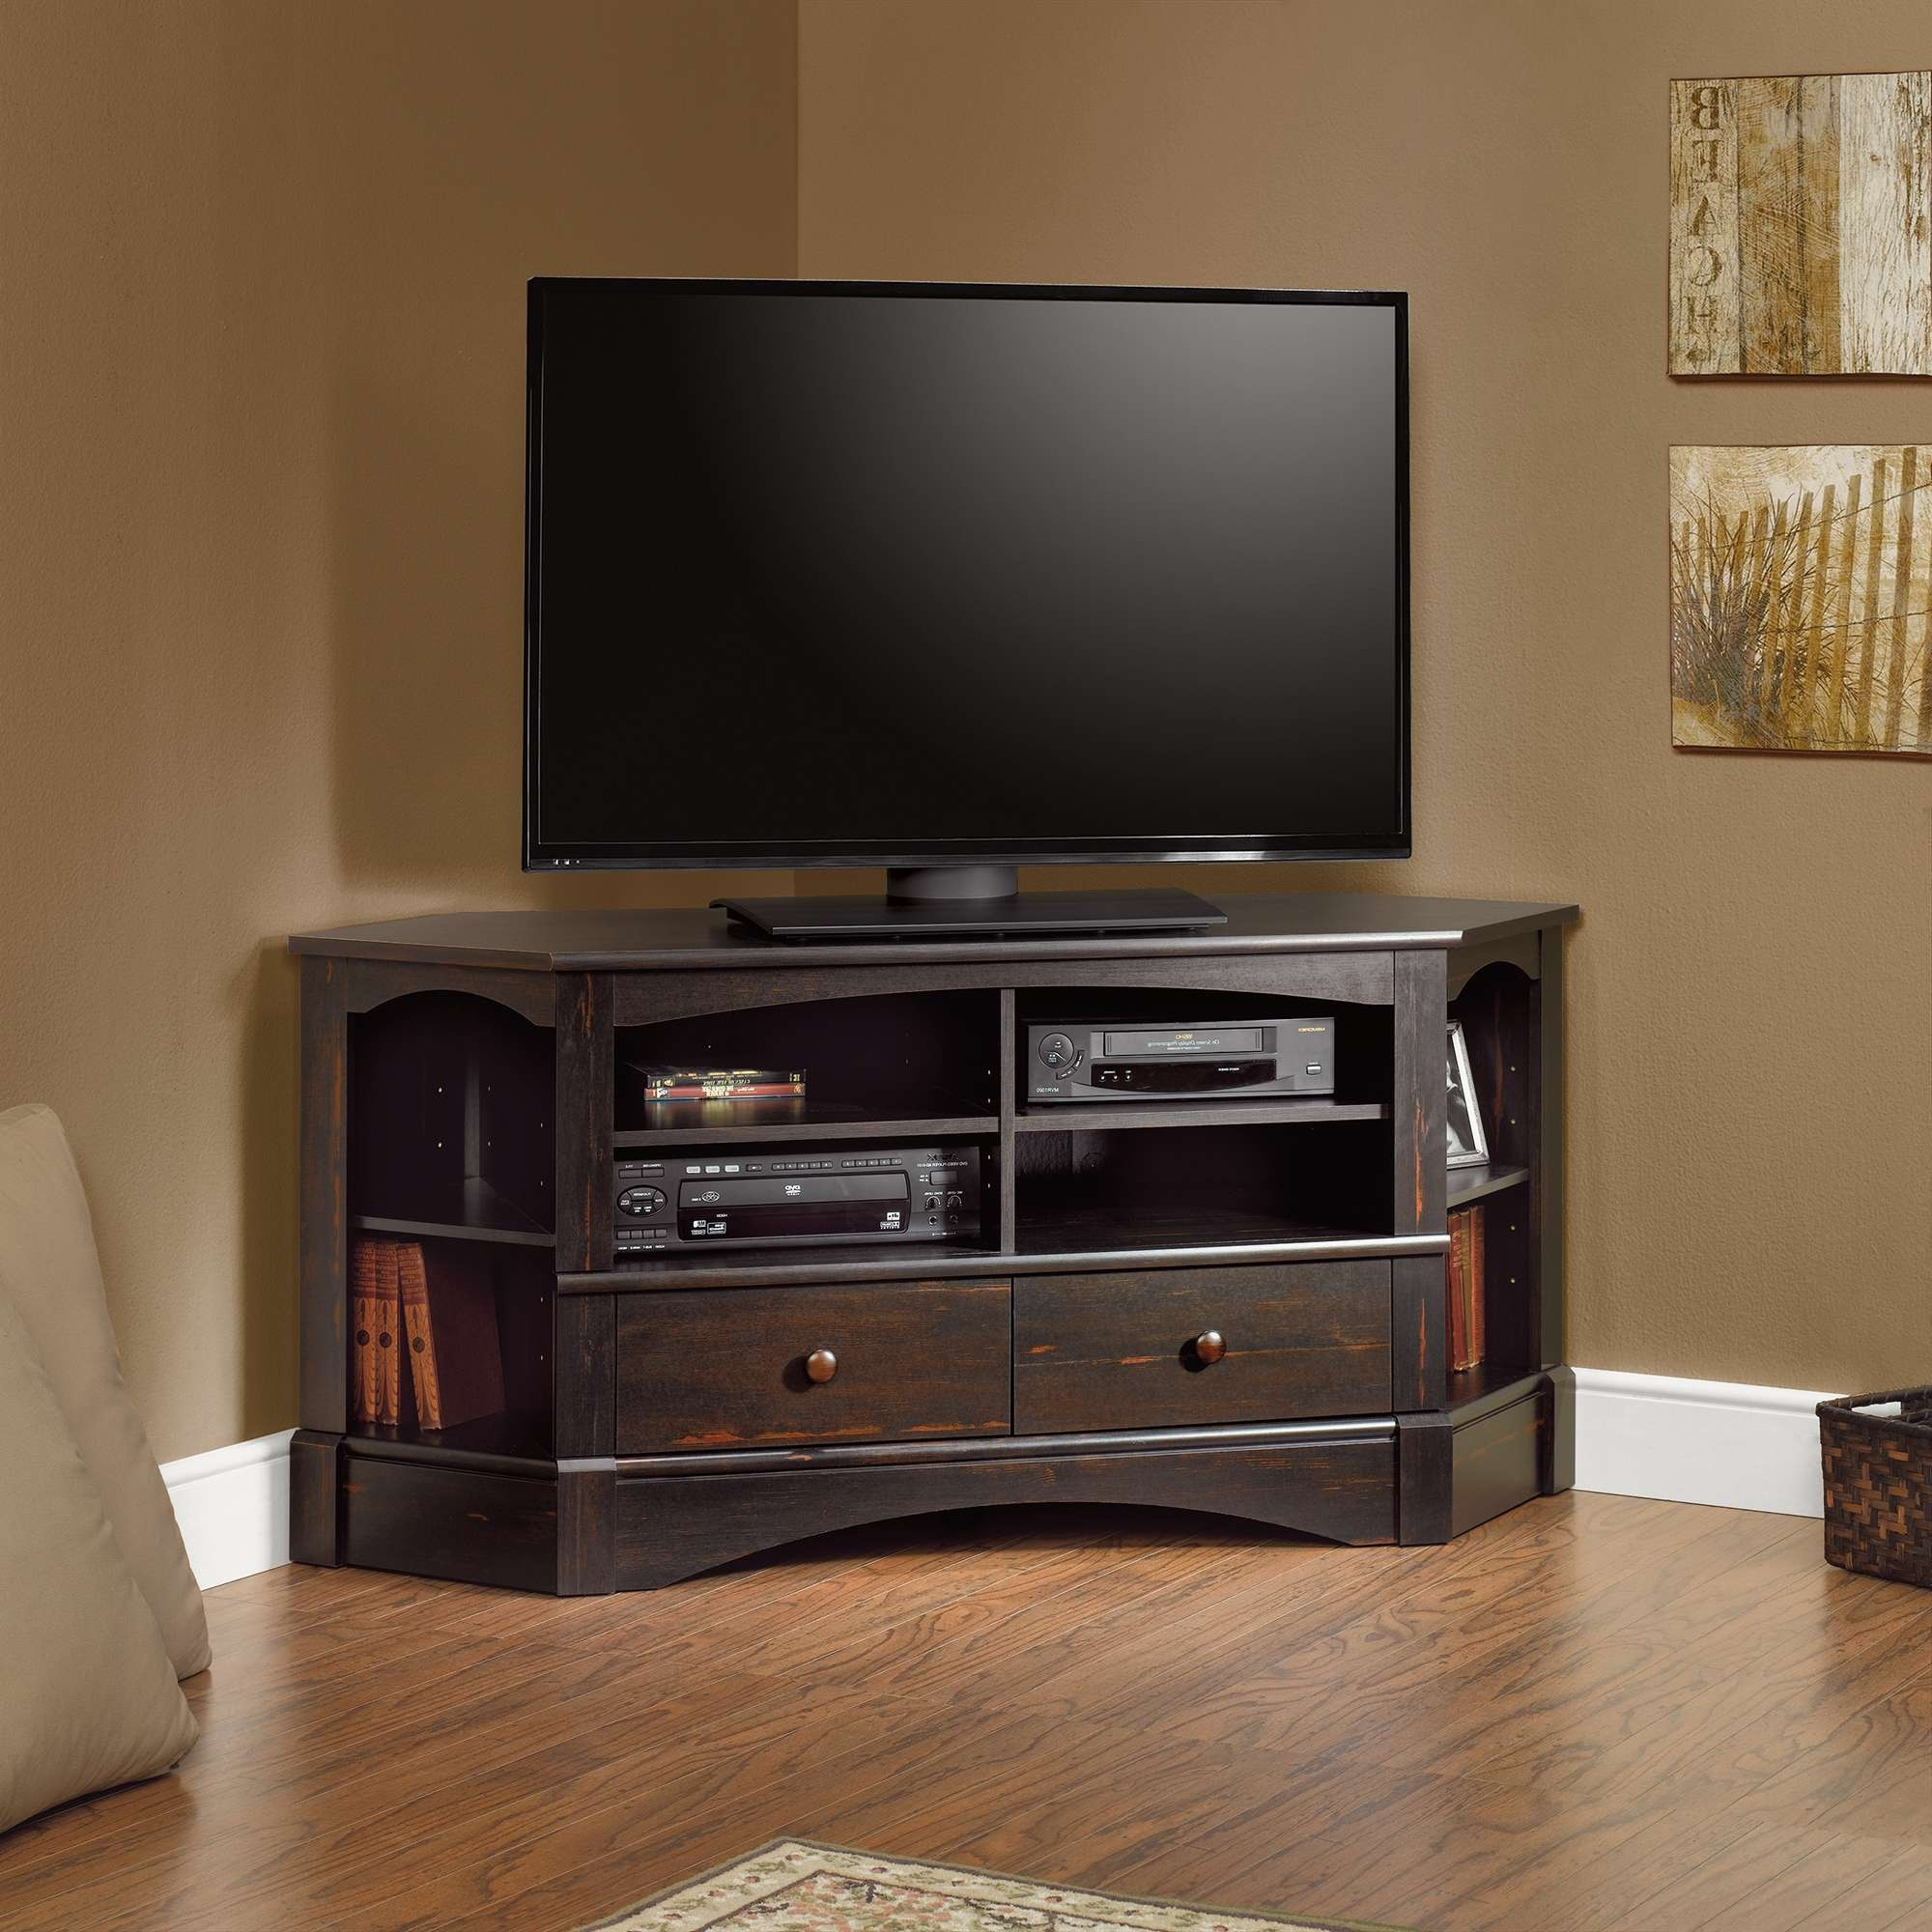 Small Wooden Corner Tv Stand Console Cabinet With Fireplace With Small Corner Tv Cabinets (View 16 of 20)